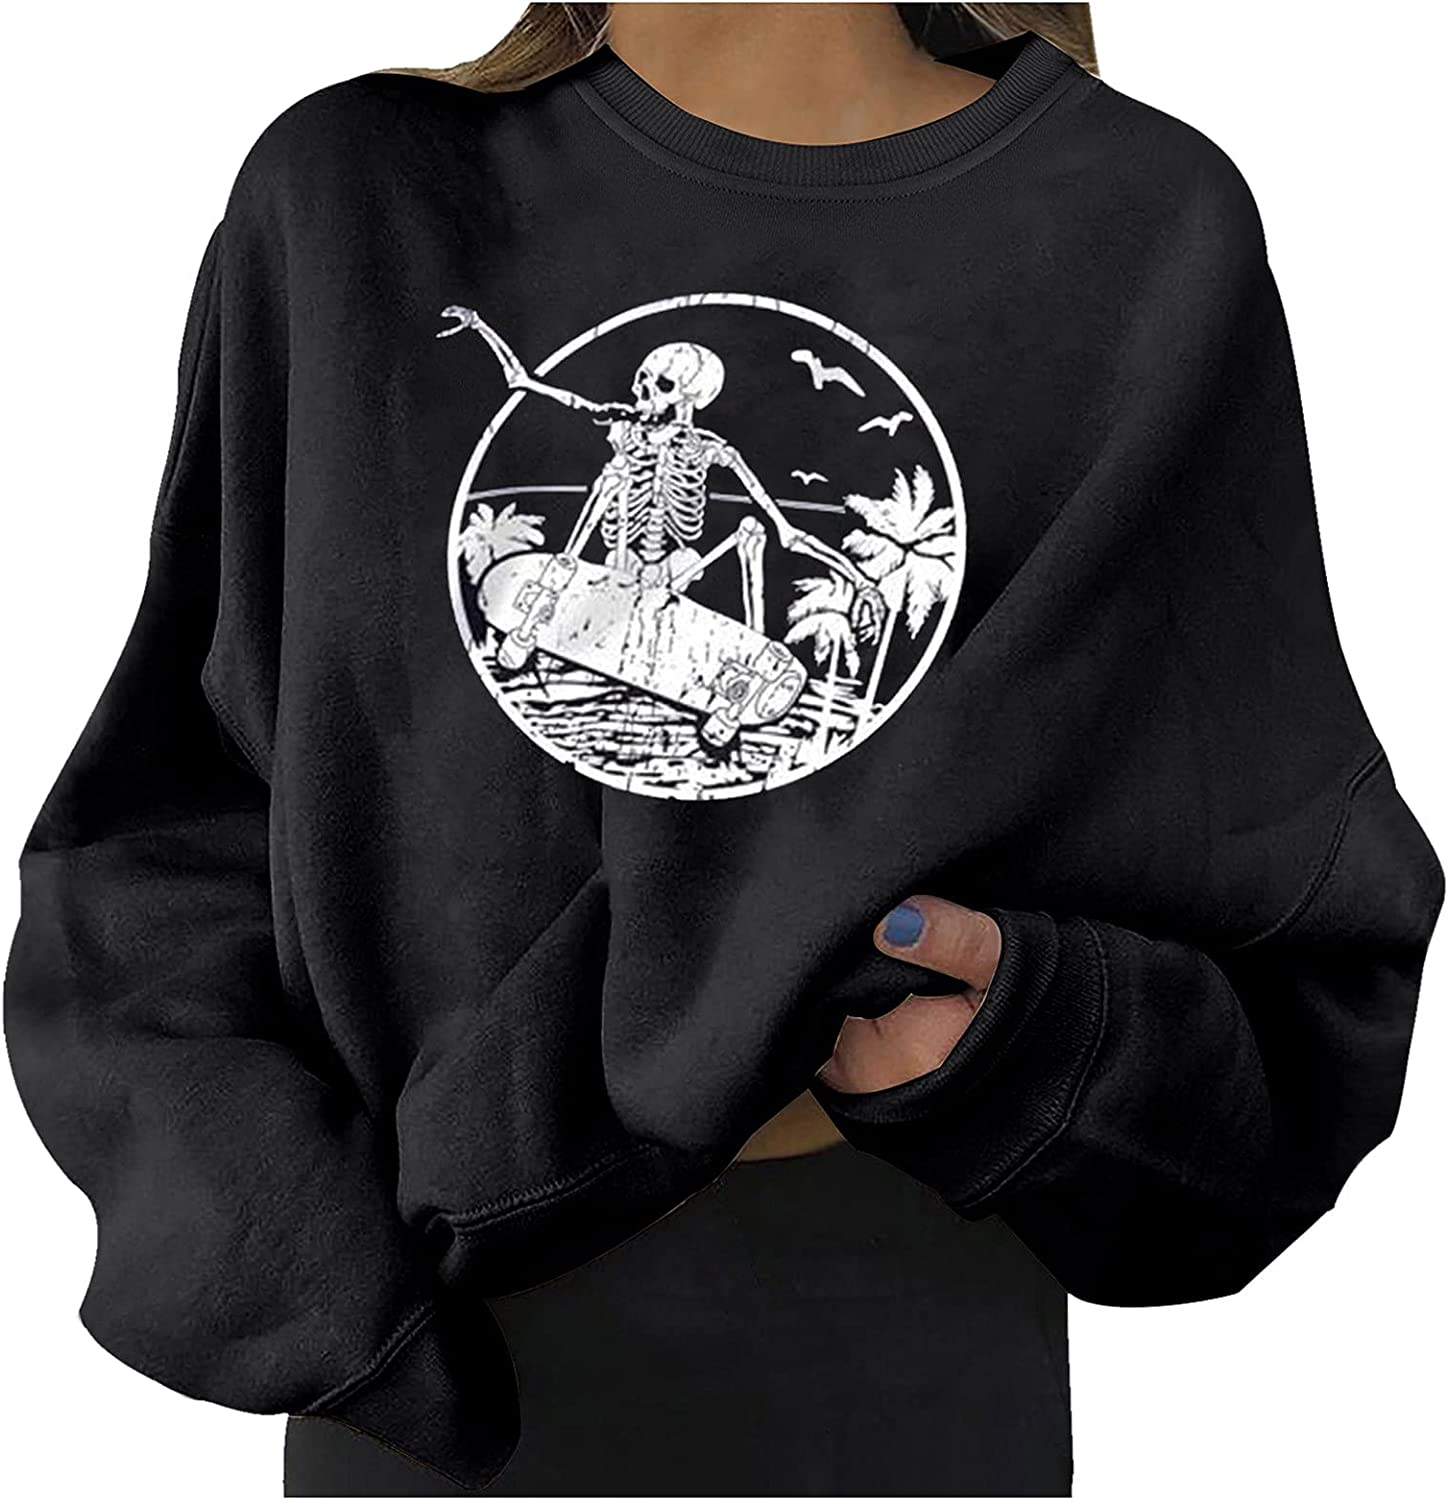 Sweatshirts for Women Graphic Print Loose Halloween Long Sleeve Pullover Tops Blouses Baseball Tee Shirts for Autumn Winter